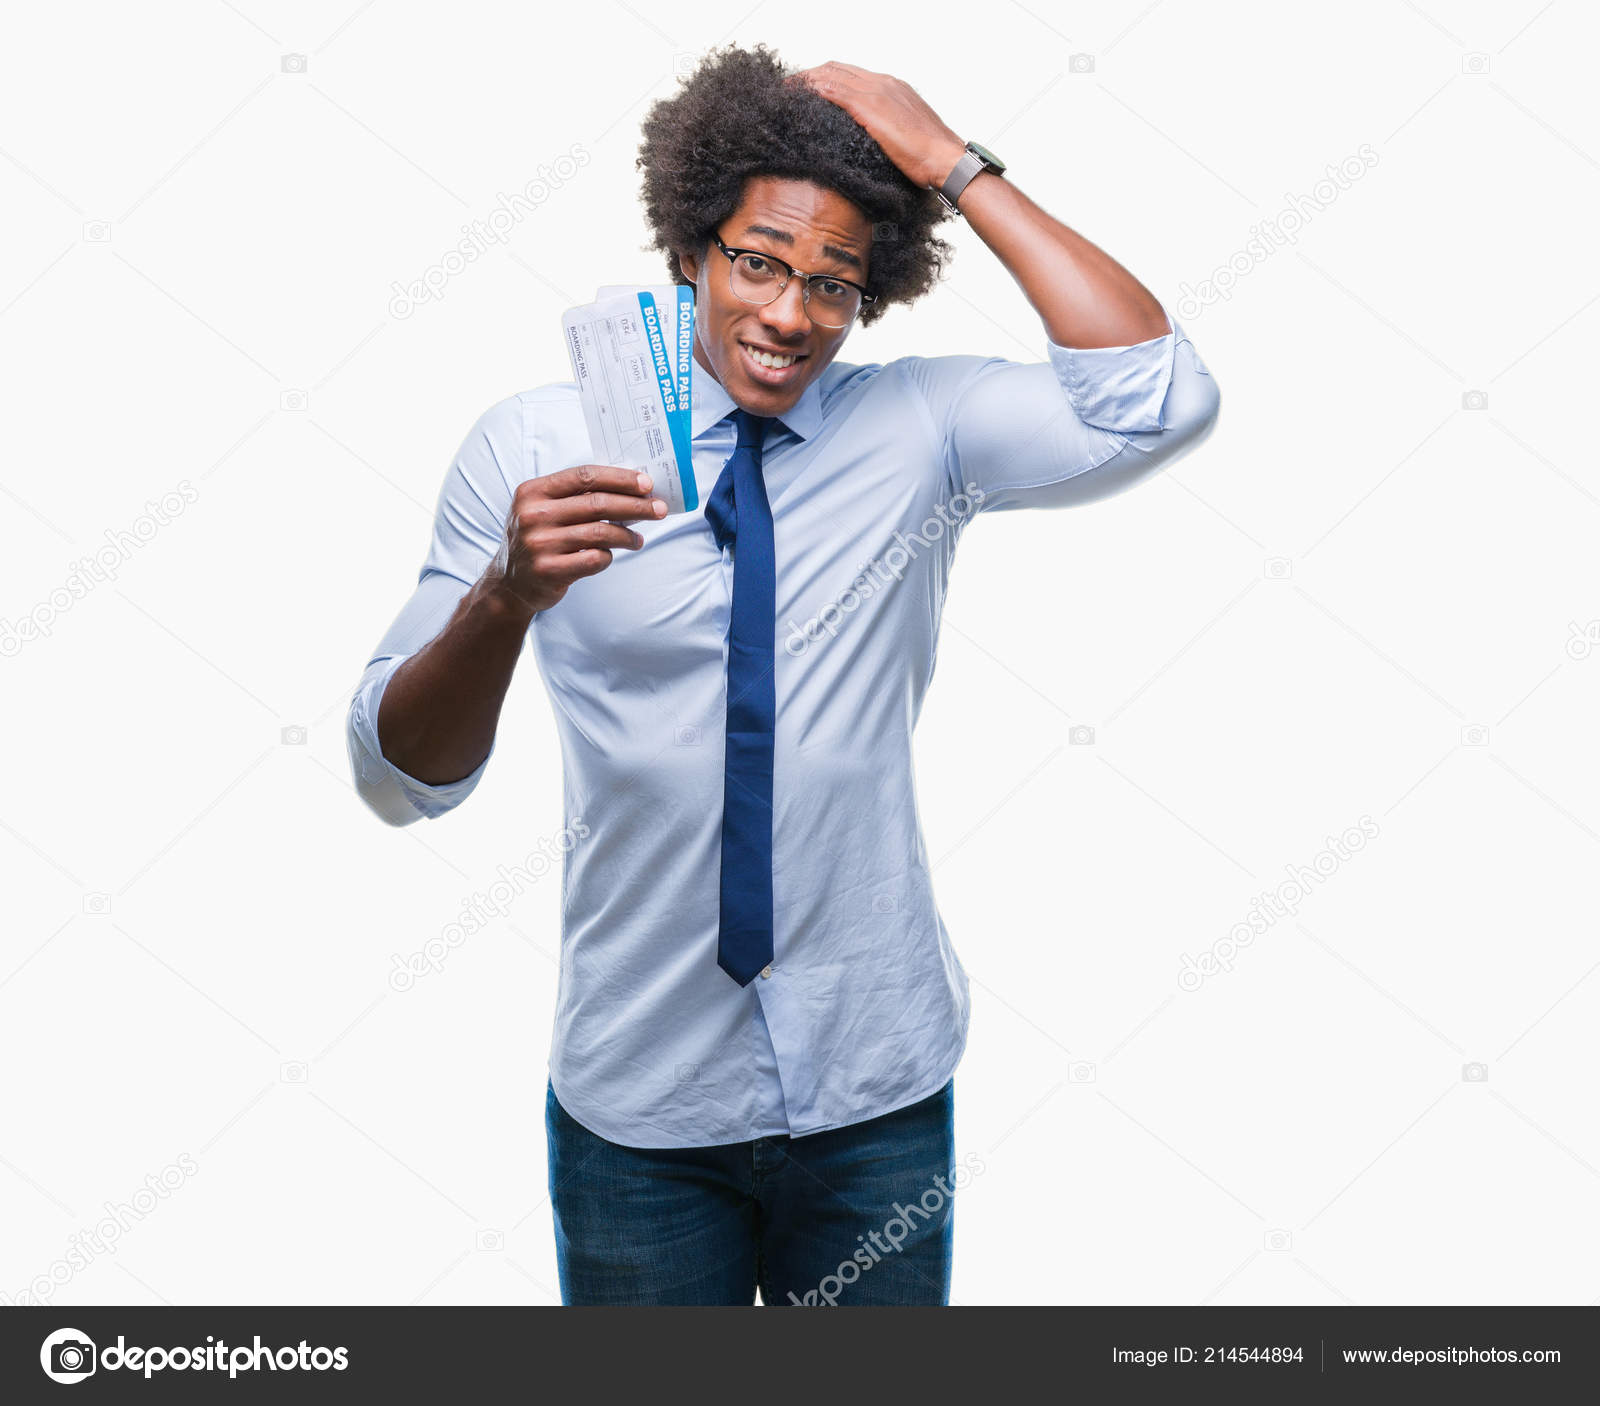 Stressed Out Students How Boarding >> Afro American Man Holding Boarding Pass Isolated Background Stressed